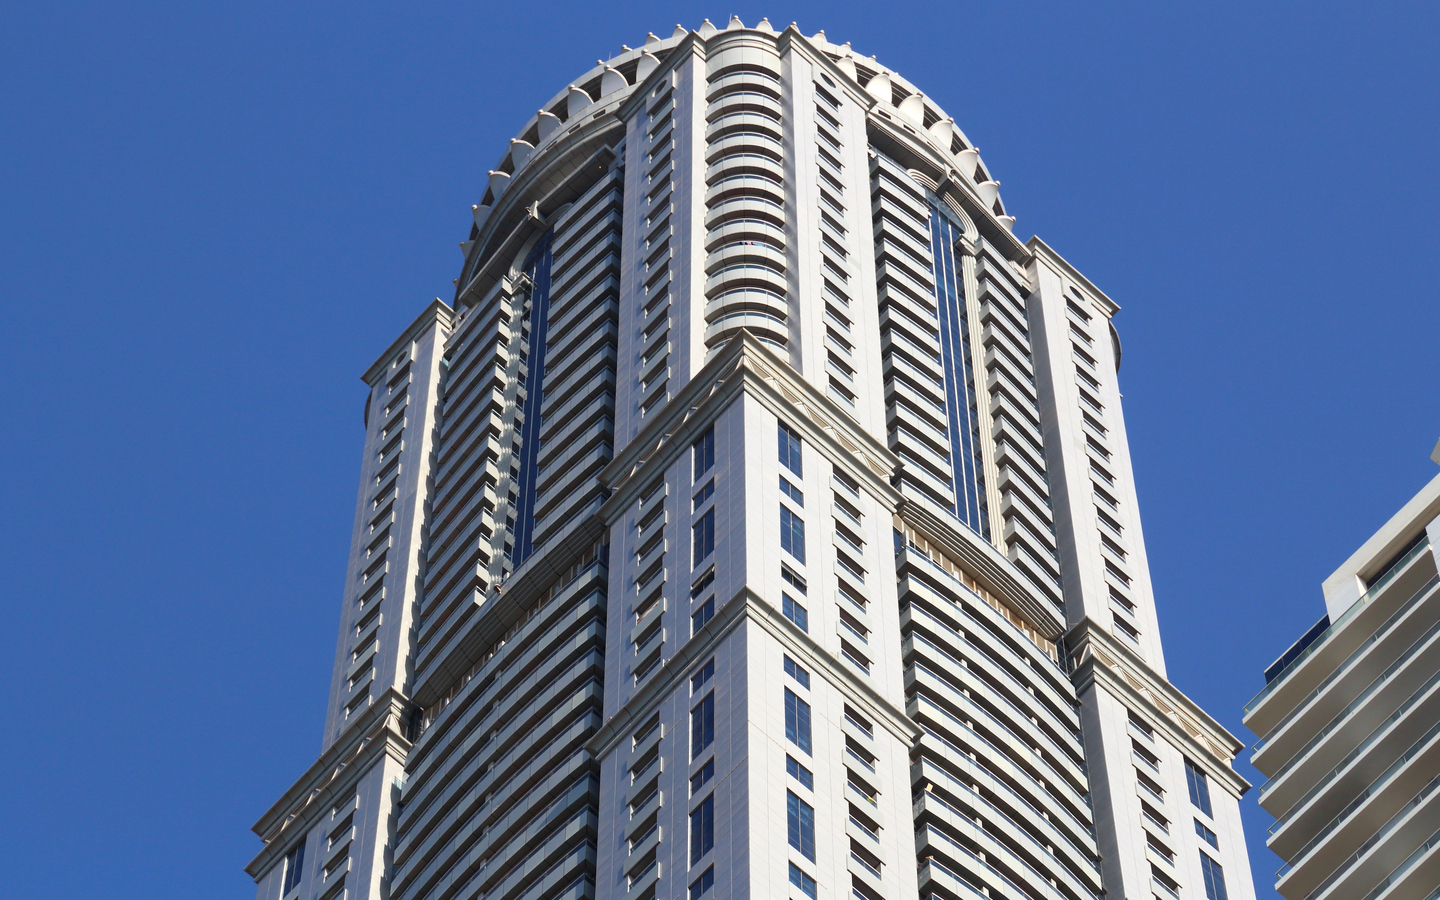 Princess Tower is the second tallest residential building in Dubai that makes an ideal choice for the residents.